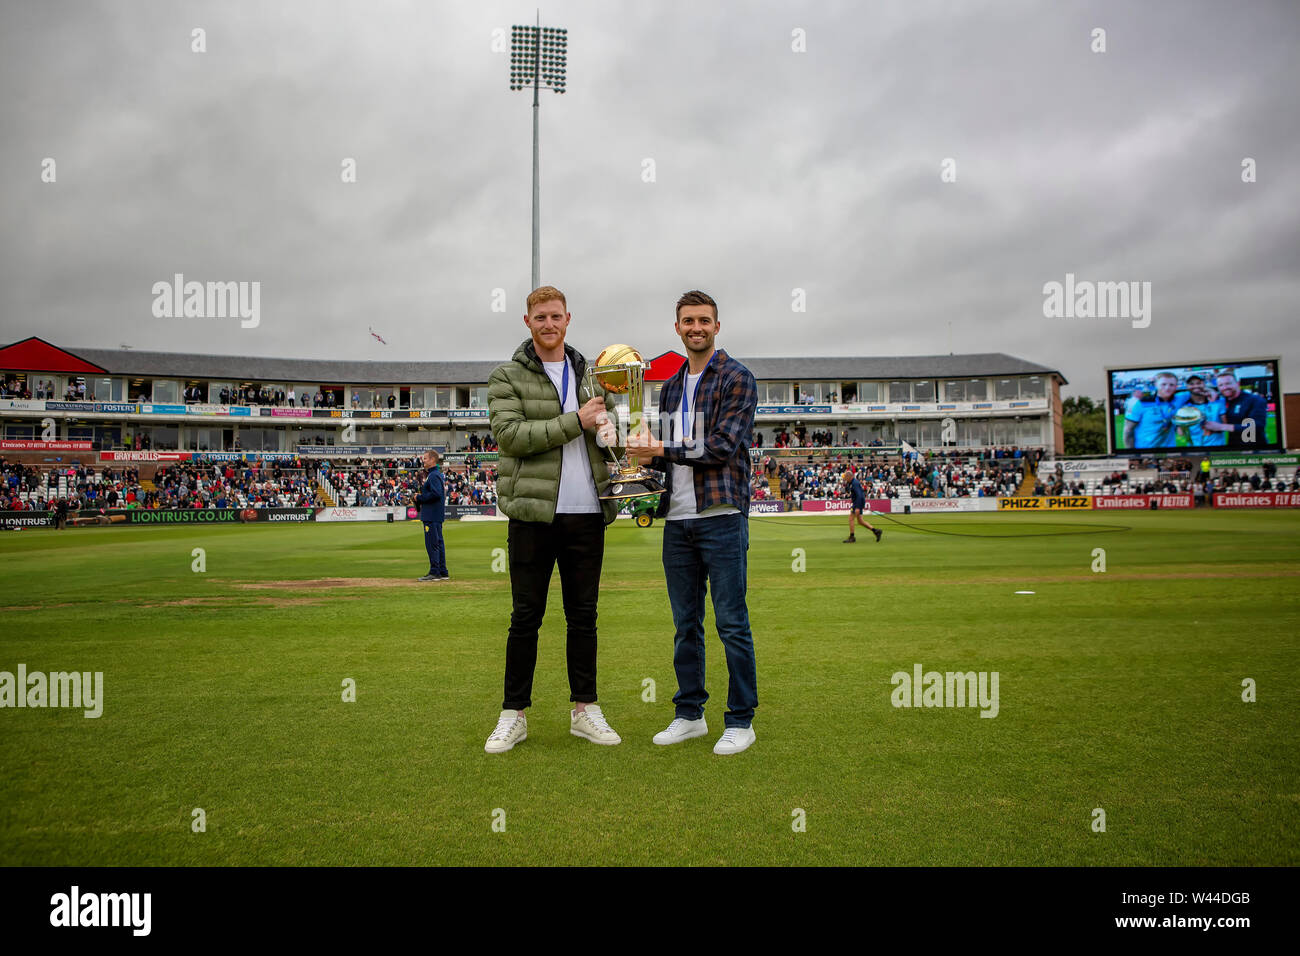 CHESTER LE STREET, ENGLAND. 19th July 2019. Mark Wood and Ben Stokes of Durham and England with the Cricket World Cup during the Vitality T20 Blast match between Durham County Cricket Club and Northamptonshire County Cricket Club at Emirates Riverside, Chester le Street on Friday 19th July 2019. (Credit: Mark Fletcher   MI News ) Credit: MI News & Sport /Alamy Live News - Stock Image